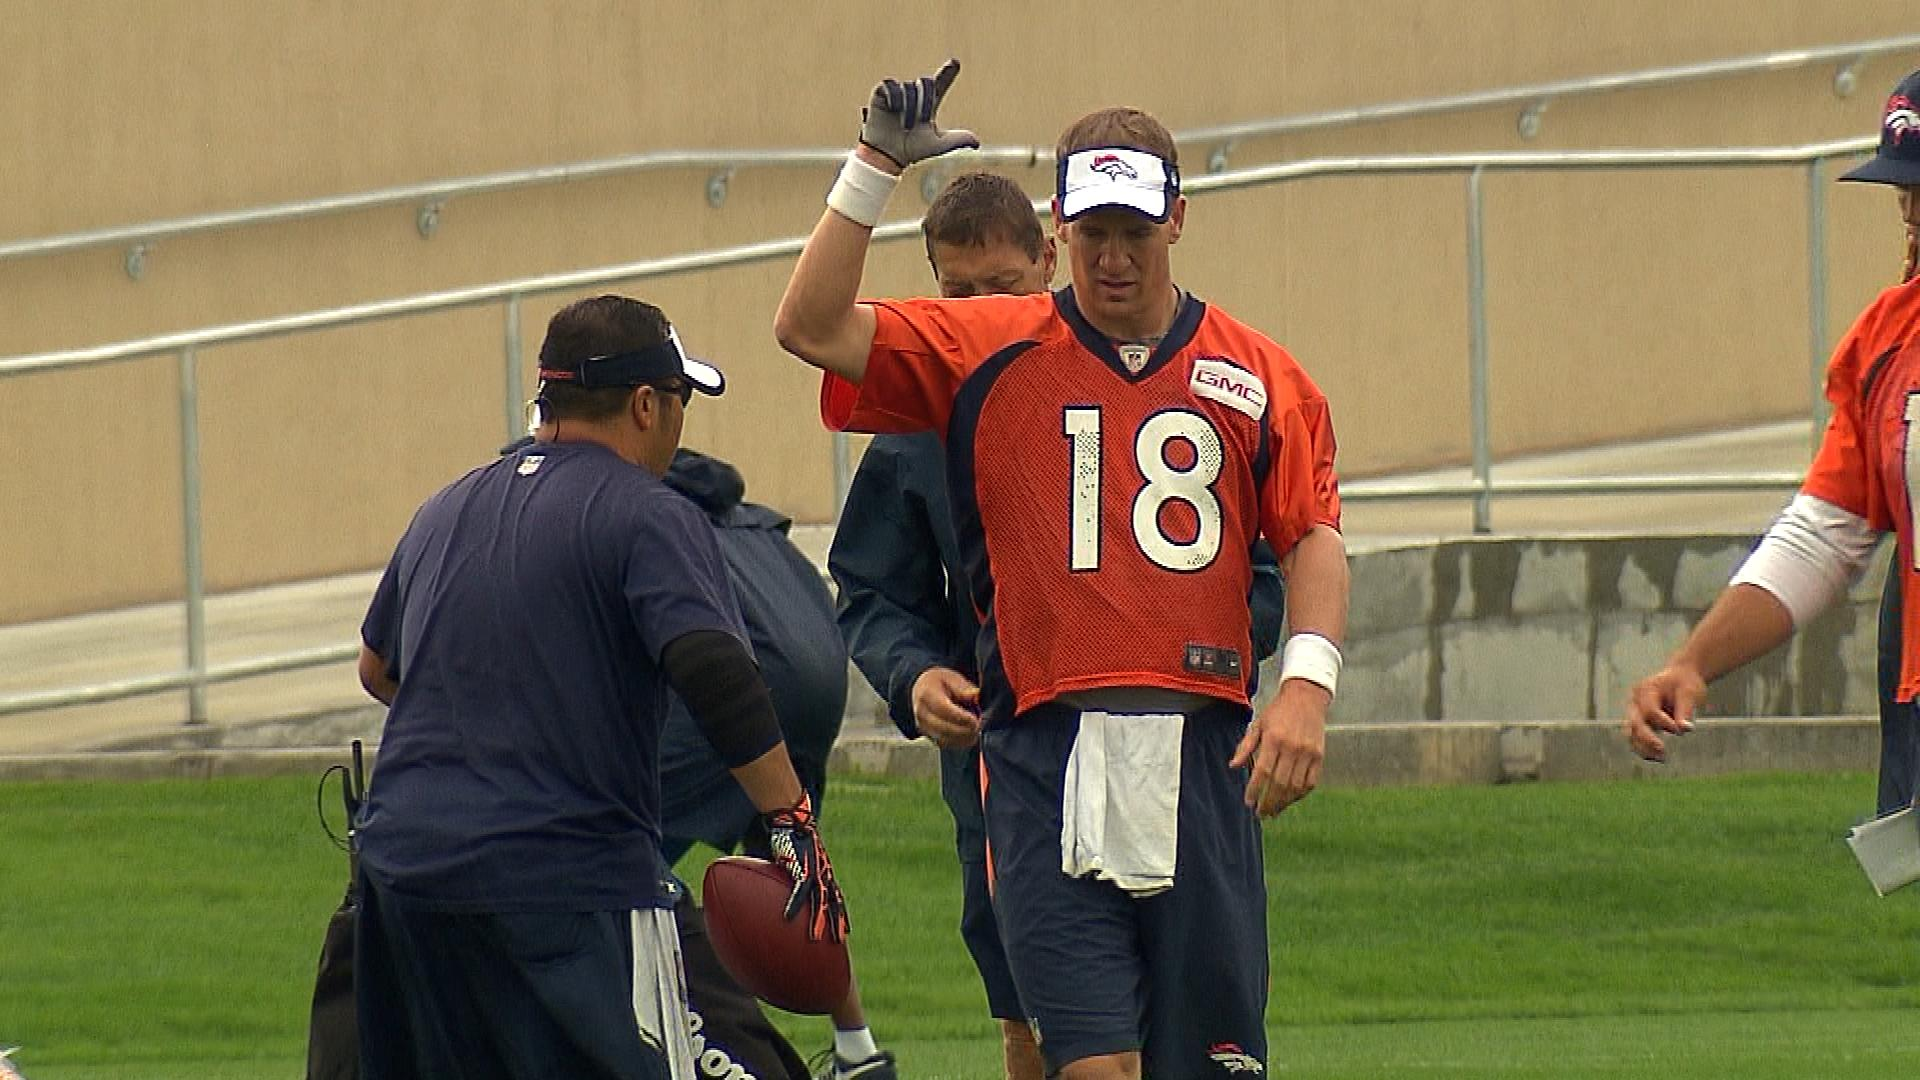 Peyton Manning at practice on Wednesday (credit: CBS)